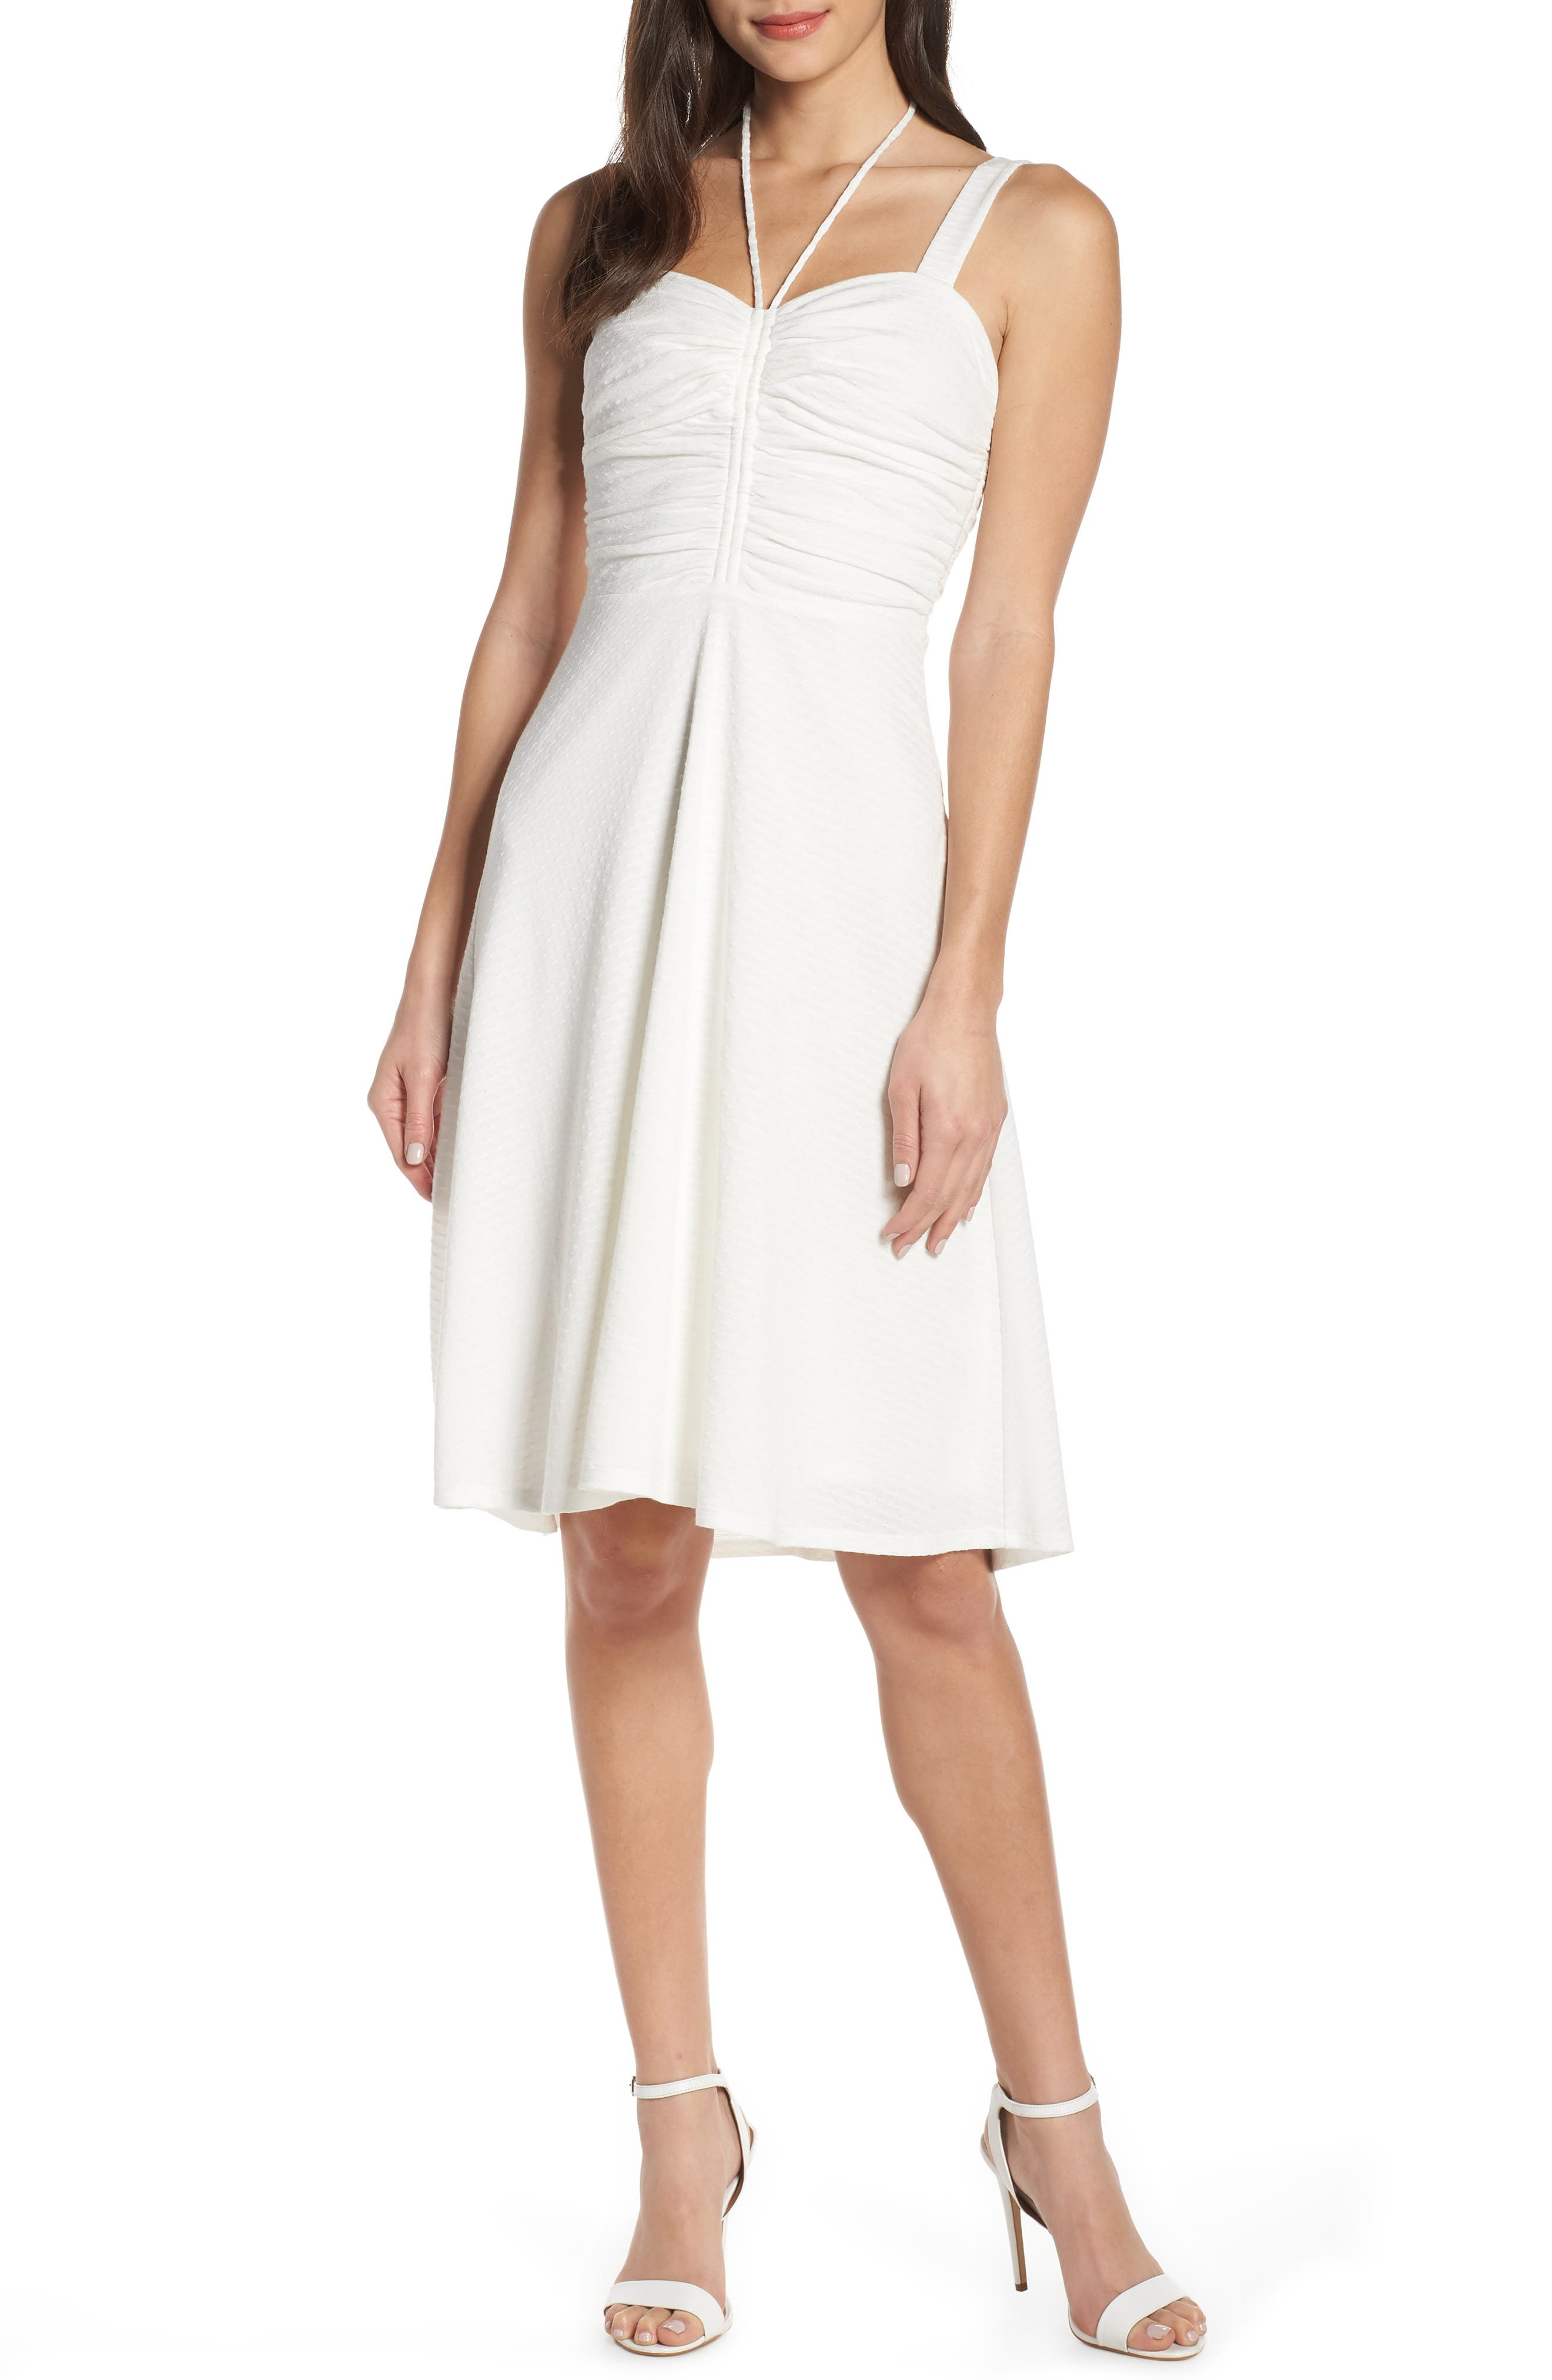 ALI & JAY, Smell the Flowers Fit & Flare Dress, Main thumbnail 1, color, WHITE